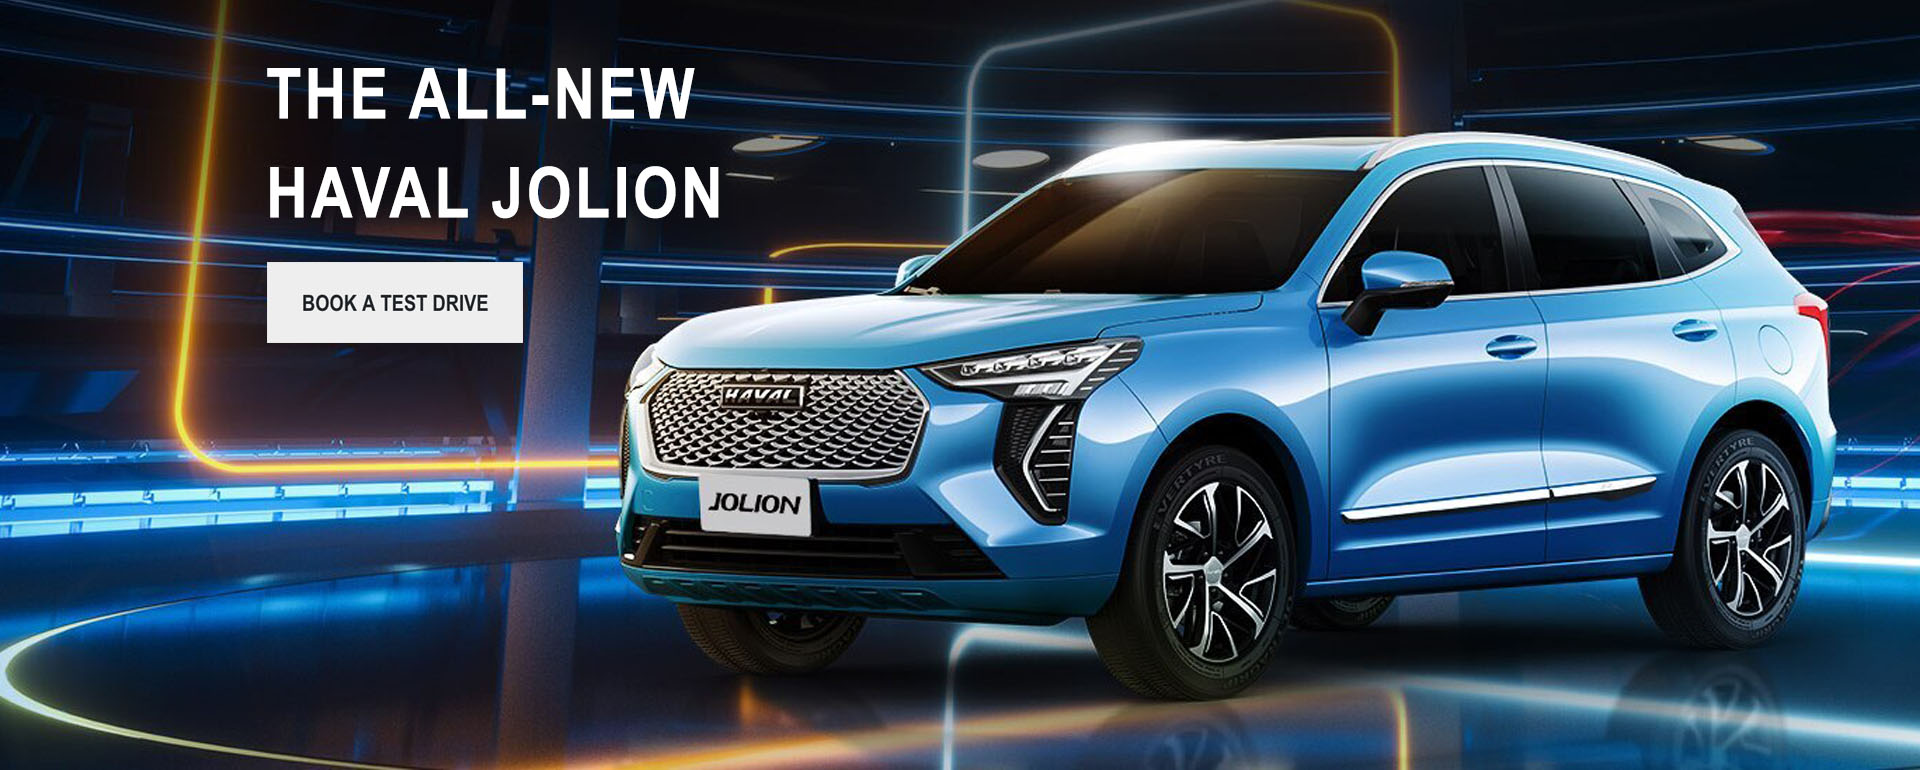 The All-New Haval Jolion